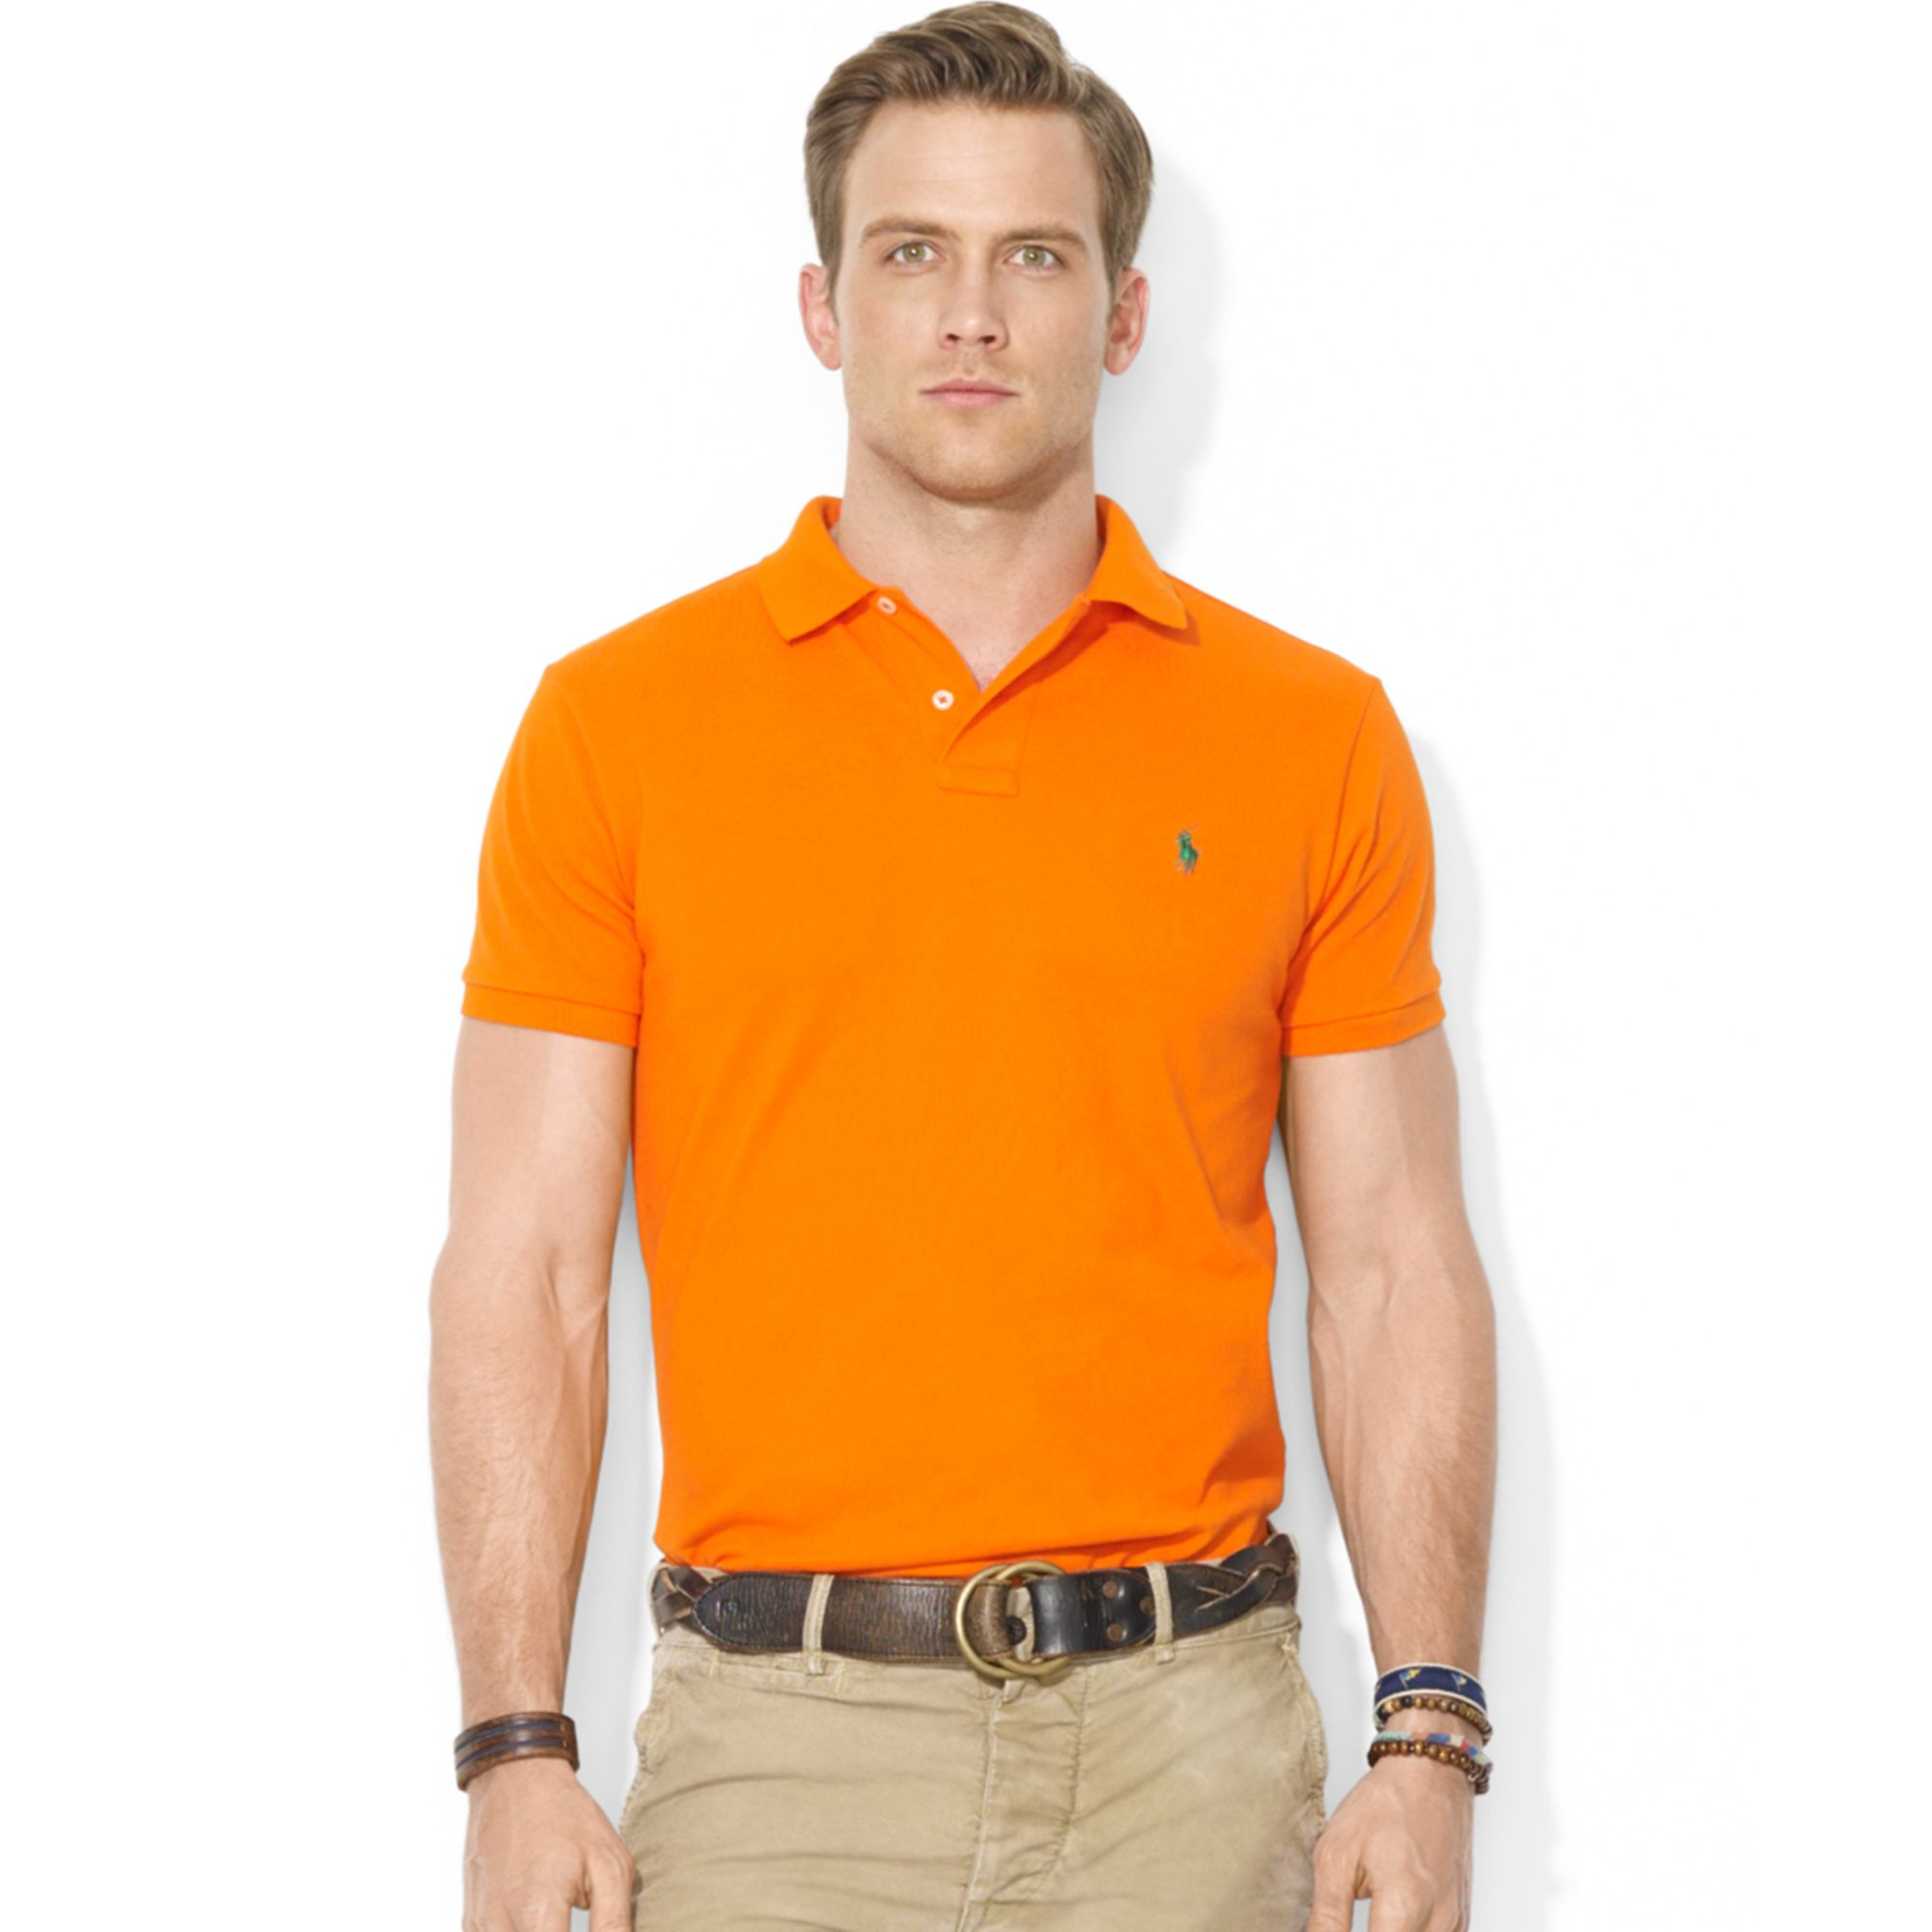 Polo ralph lauren custom fit mesh polo shirt in orange for Man in polo shirt